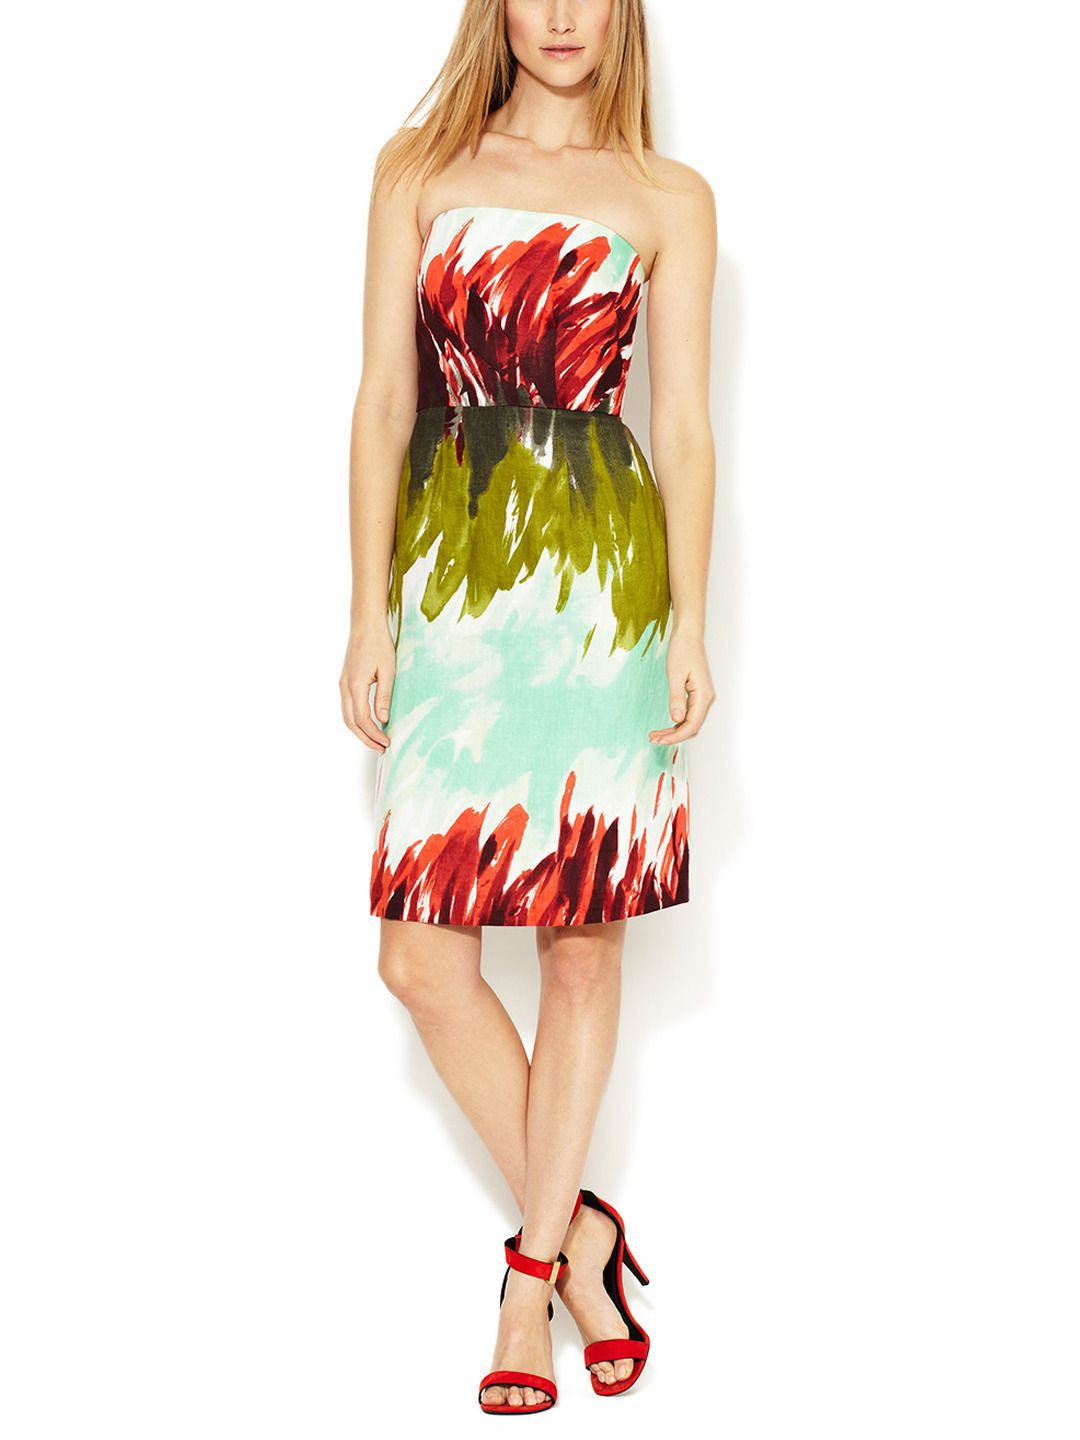 Kali linen printed strapless dress from new spring essentials